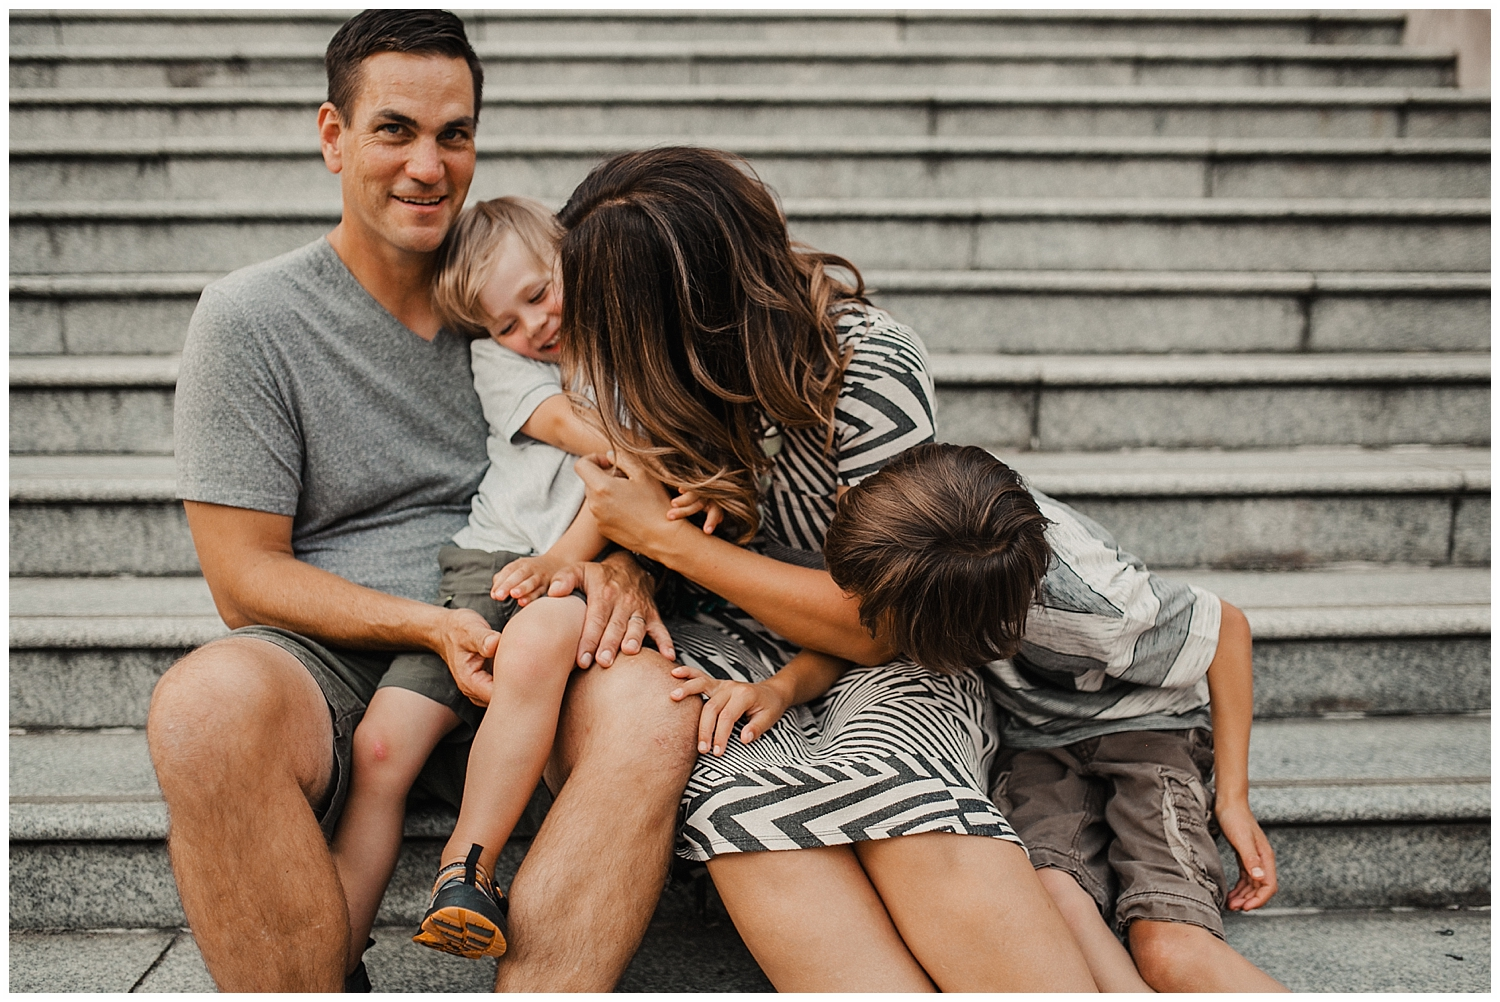 lindybeth photography - family pictures - kibbe family-109.jpg